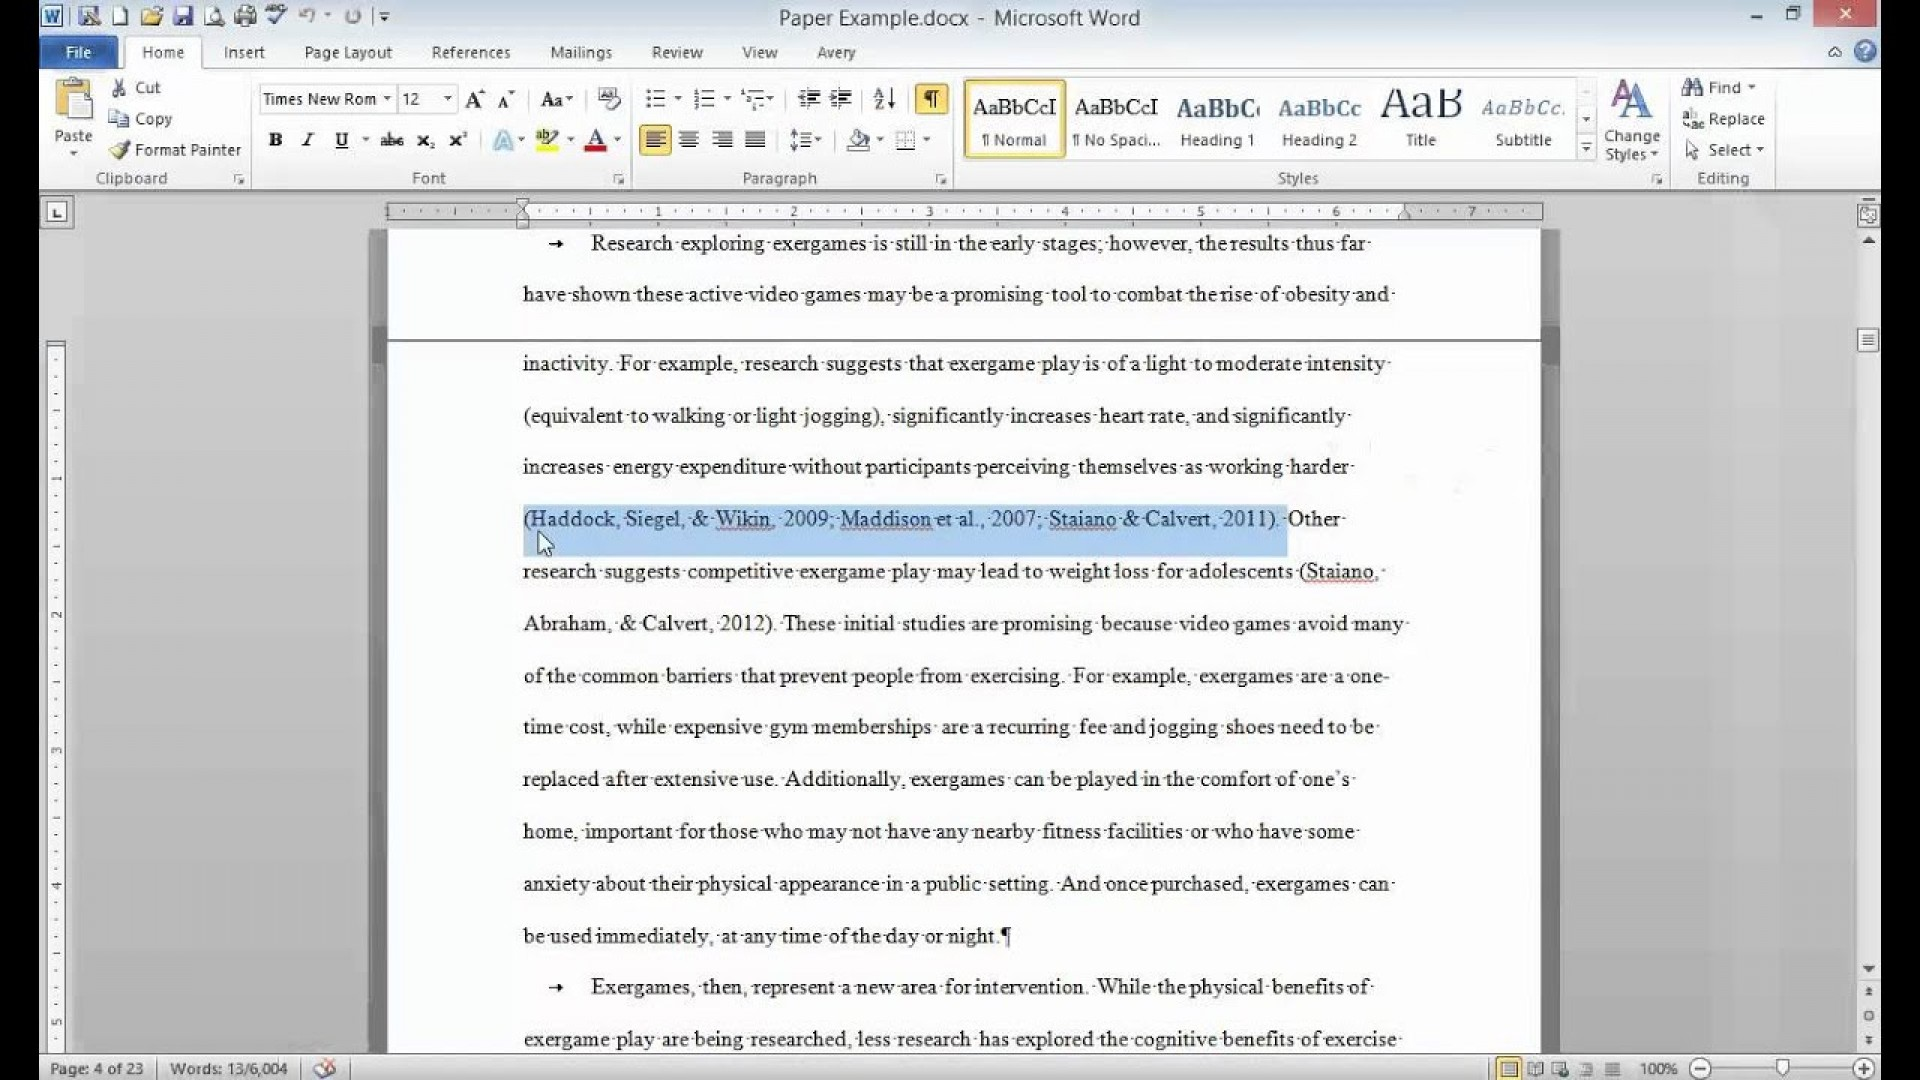 004 How To Cite Website In Research Paper Apa Best A Reference 1920